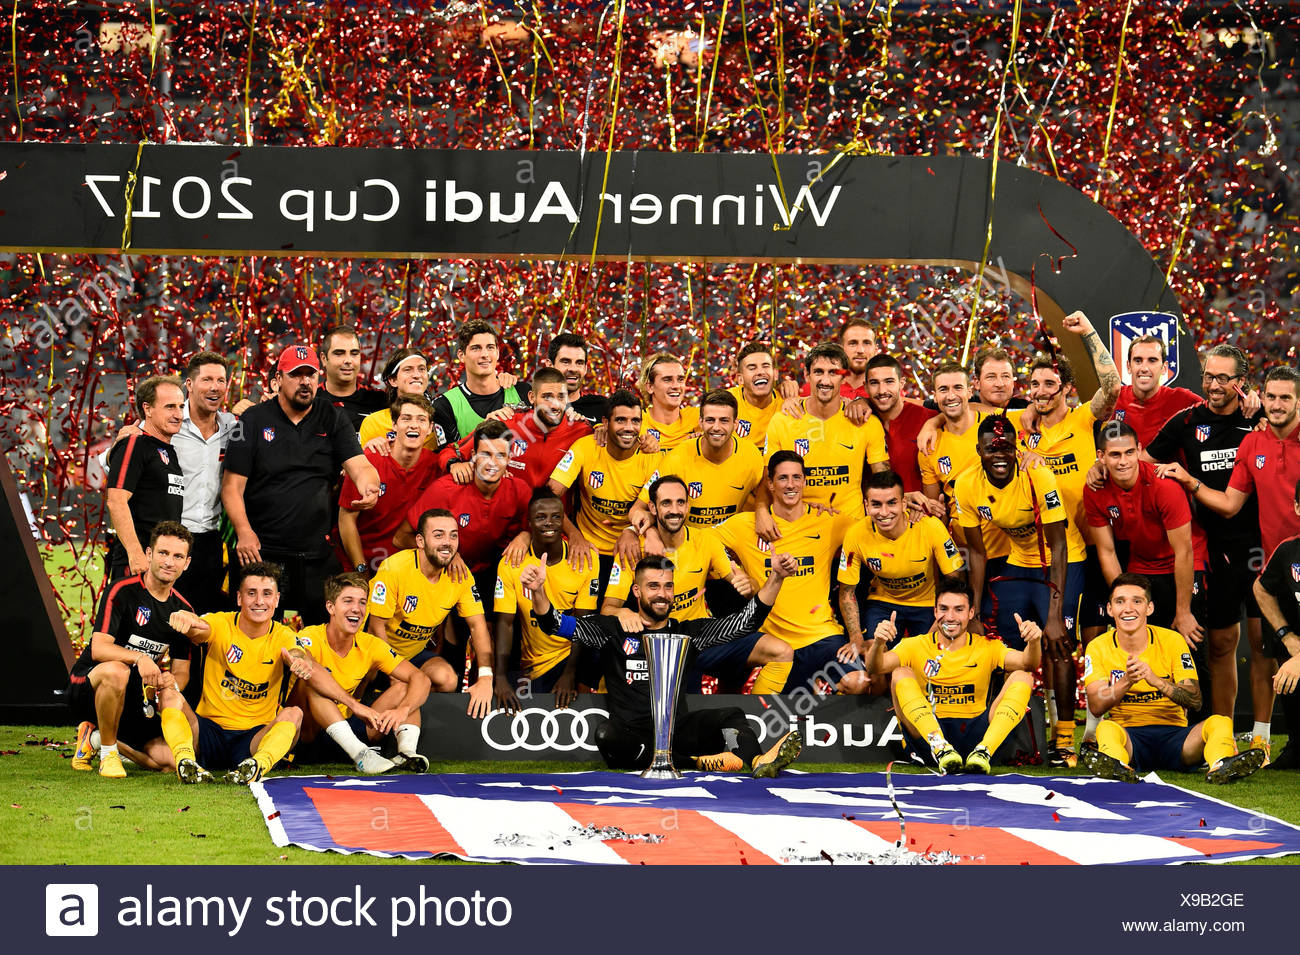 Atletico Madrid wins Audi Cup 2017, Allianz Arena, Munich, Bavaria, Germany - Stock Image